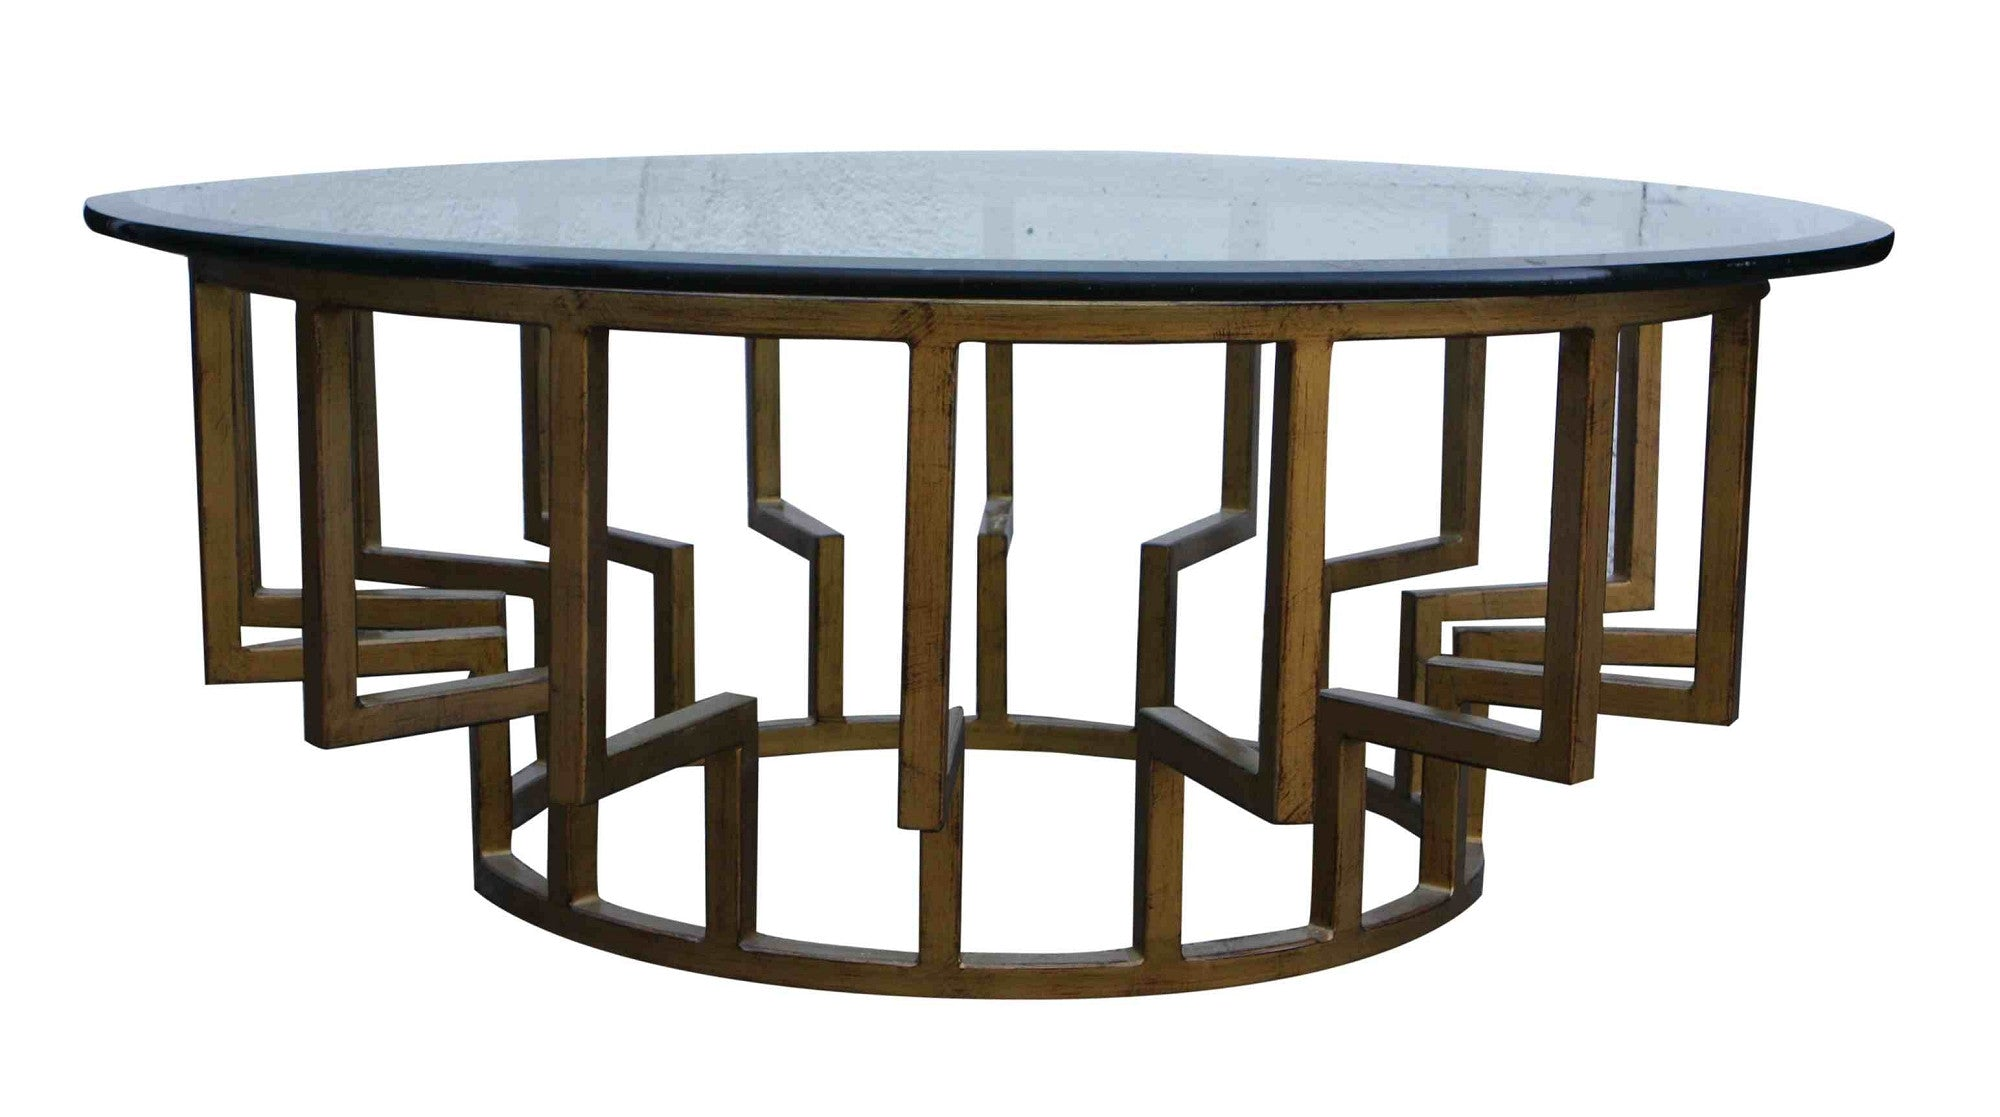 New York Round Modern Coffee Table – Mortise & Tenon